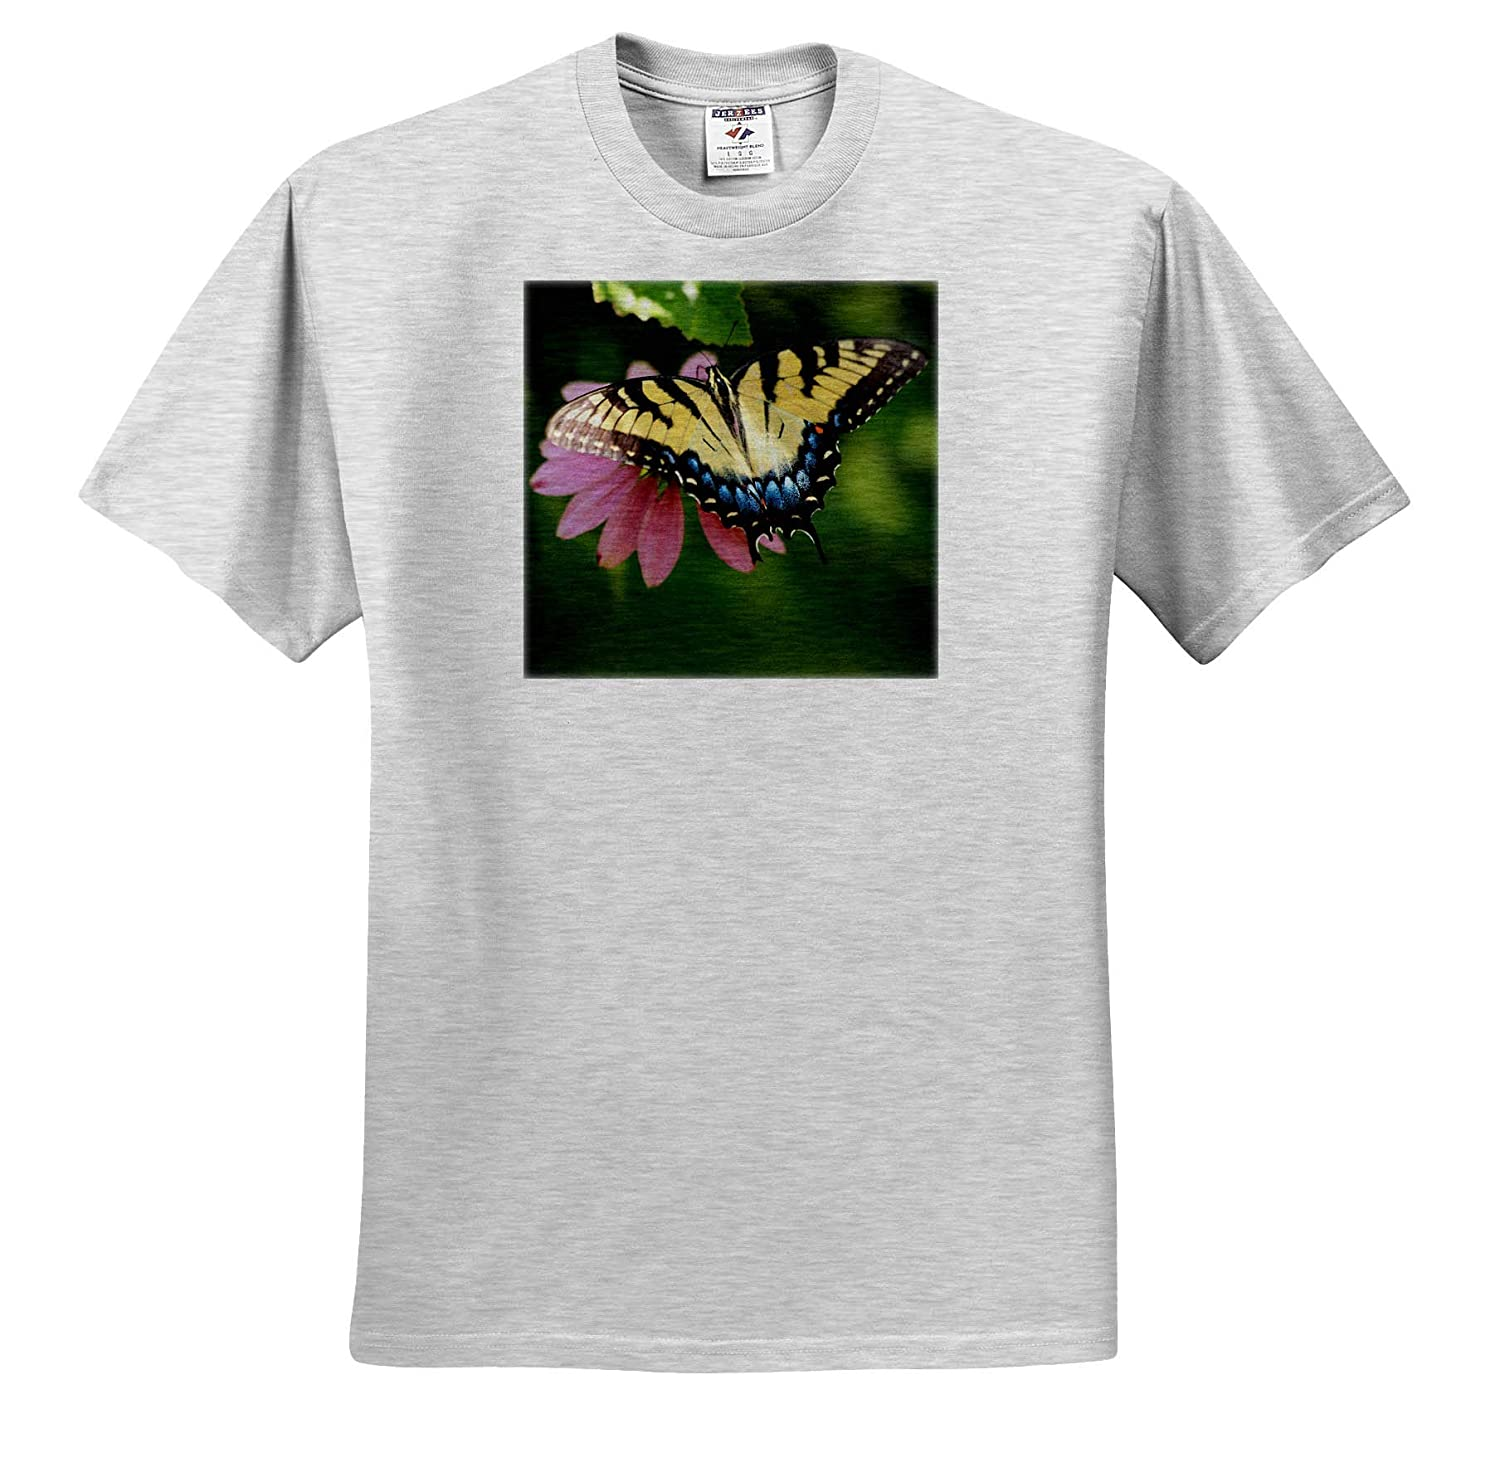 Top View Macro Photograph of an Eastern Tiger Swallowtail Insect ts/_320187 - Adult T-Shirt XL 3dRose Stamp City